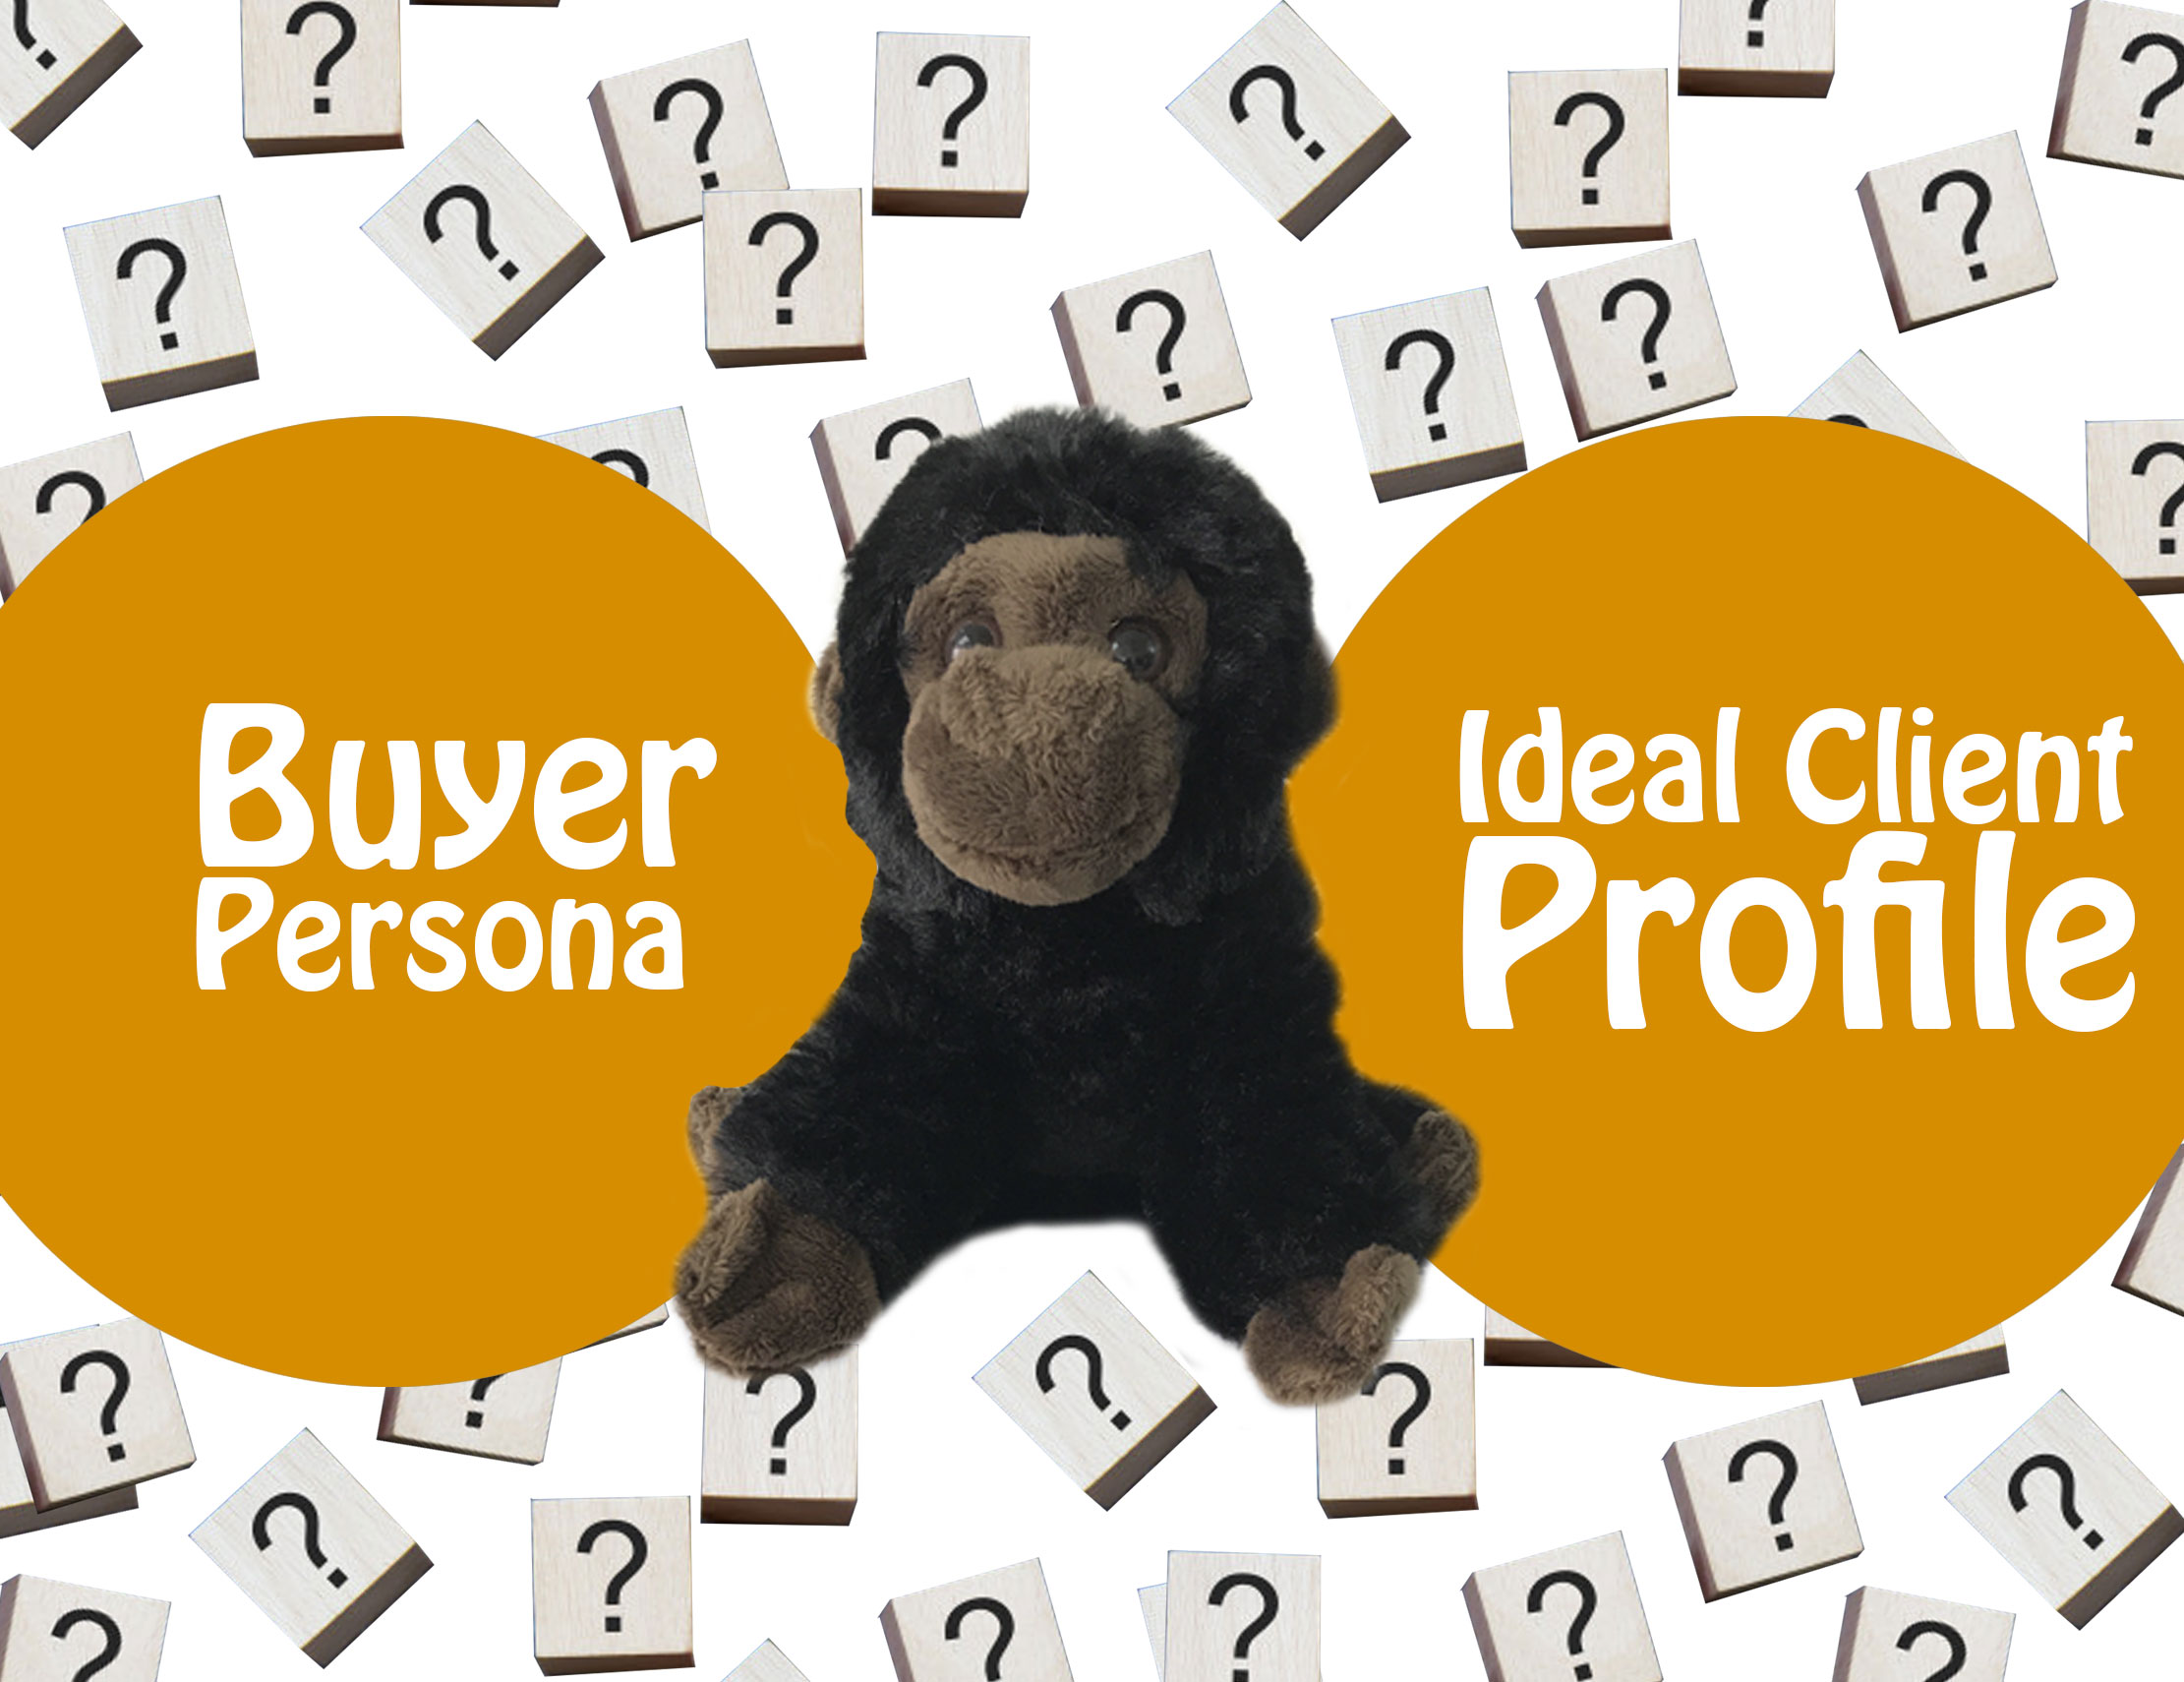 buyer-persona-o-ideal-client-profile-1